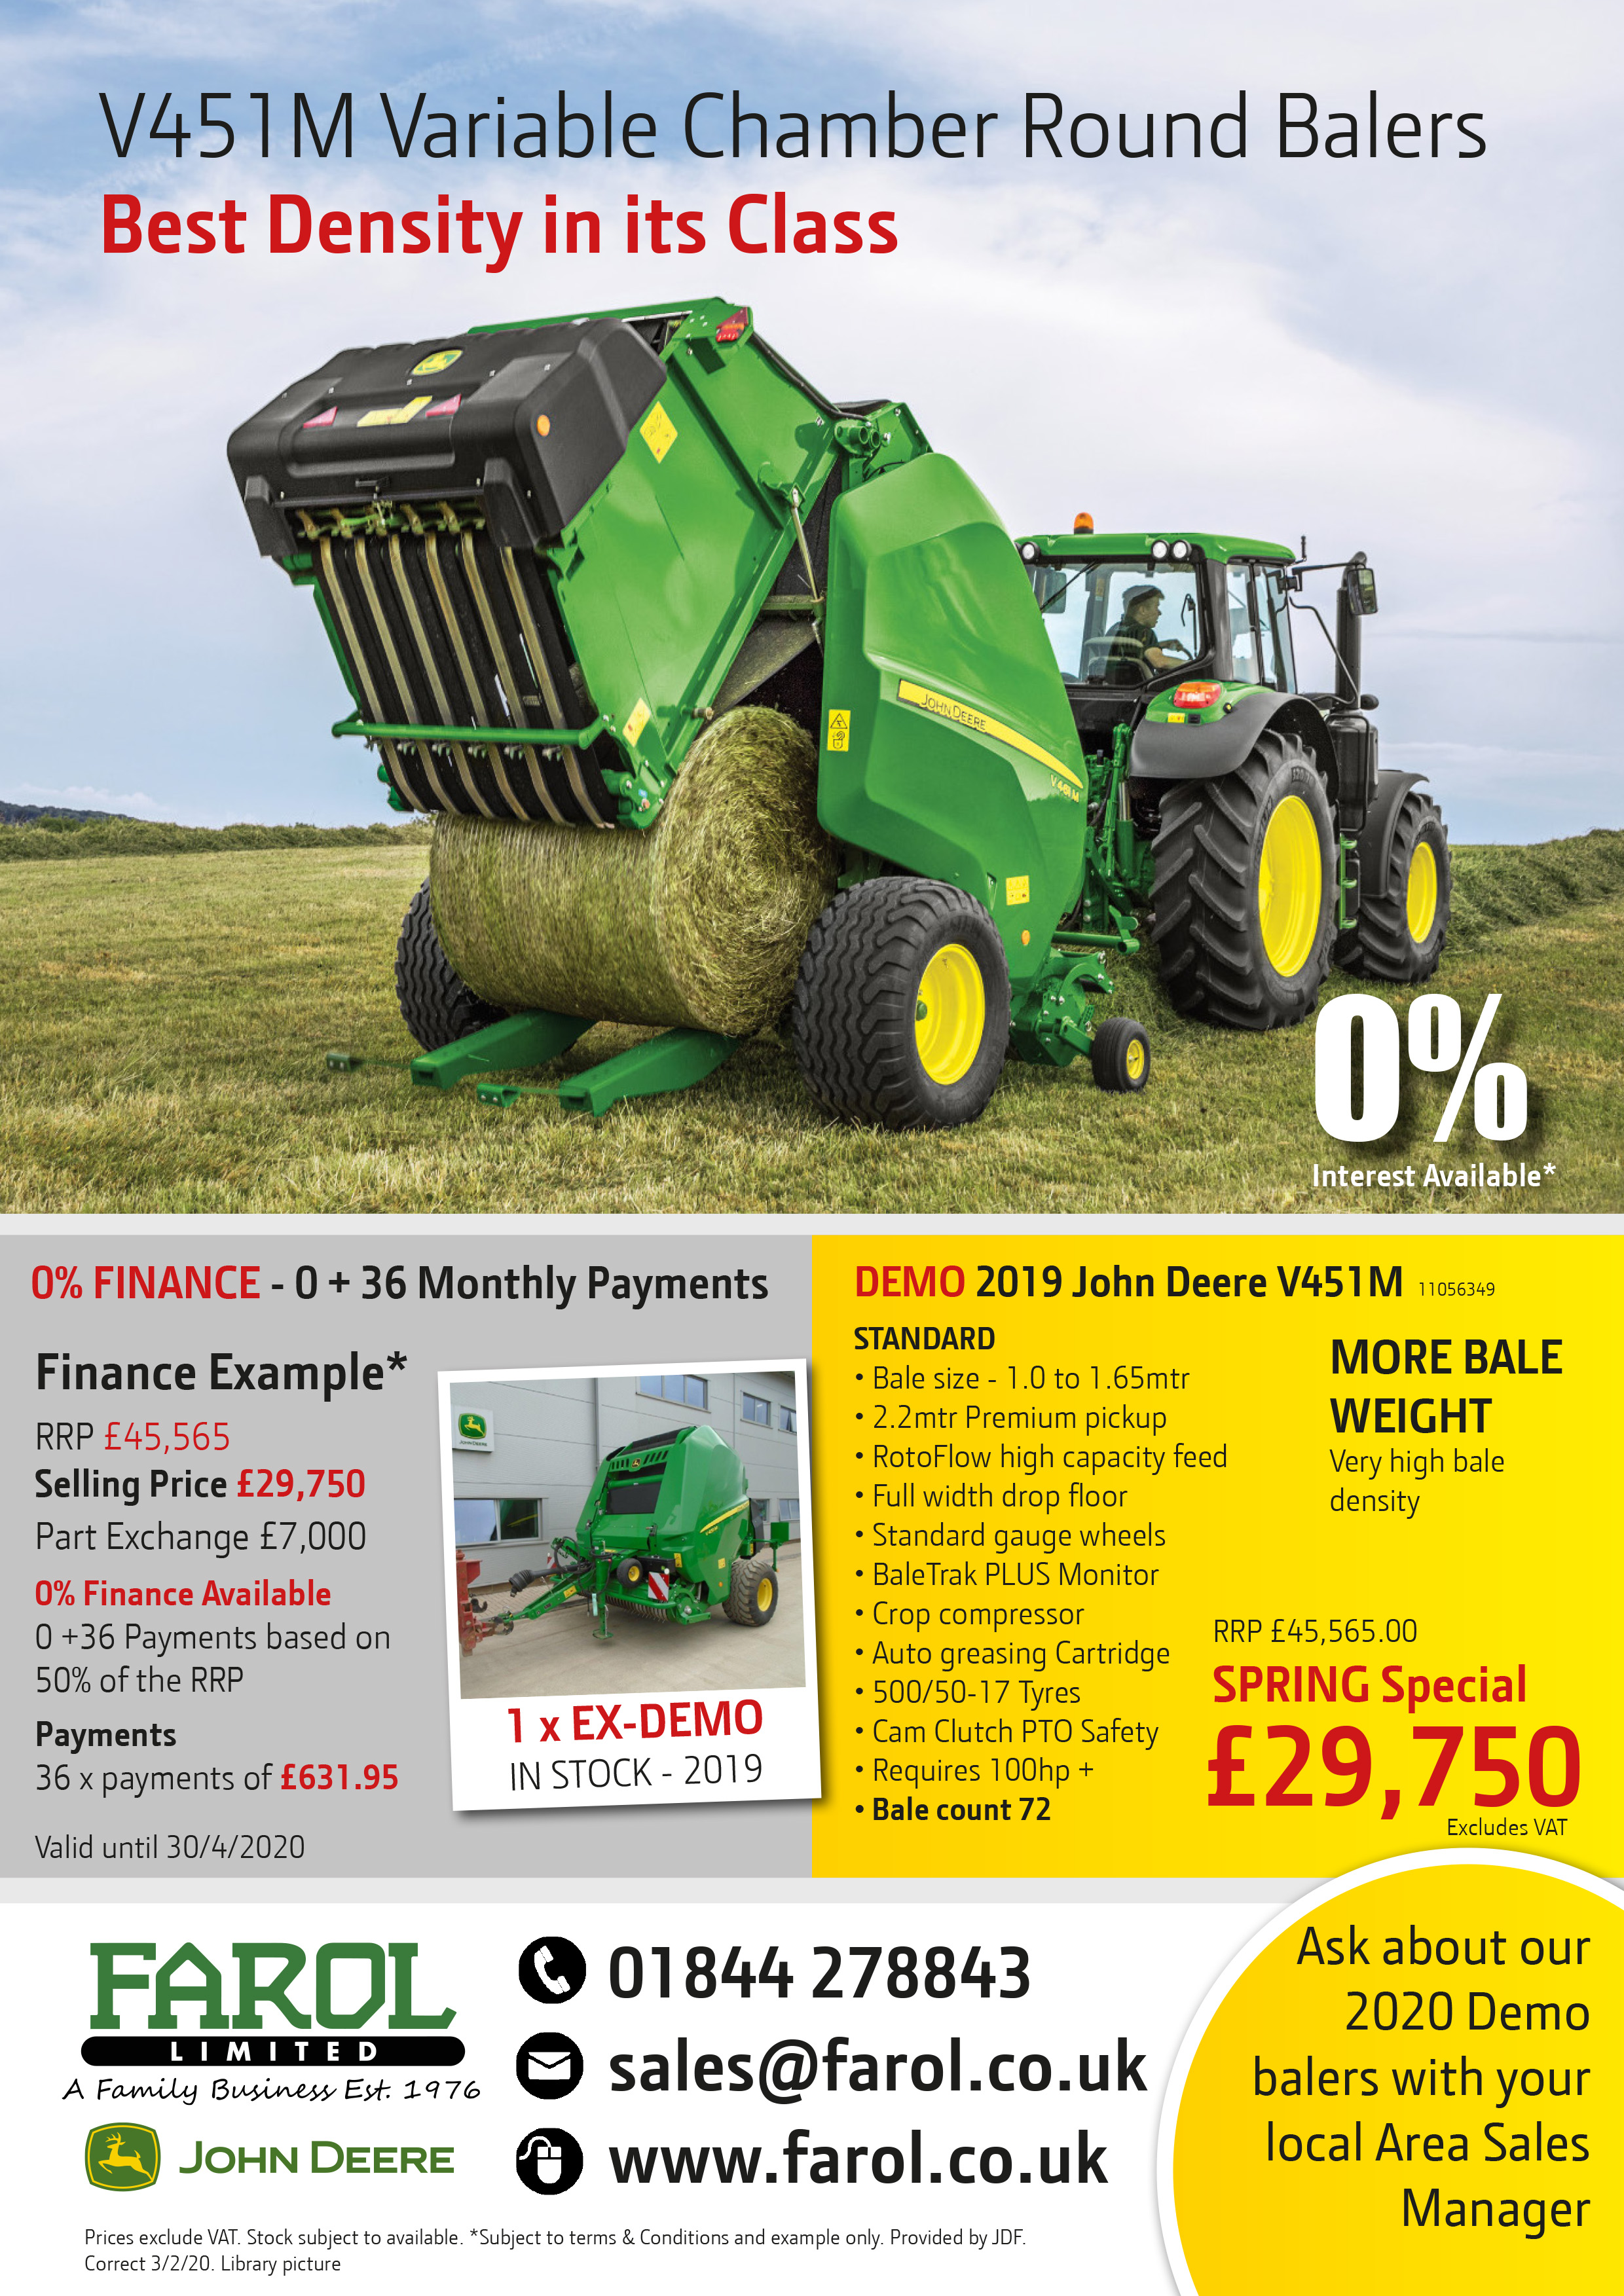 John Deere V451M Baler Offer